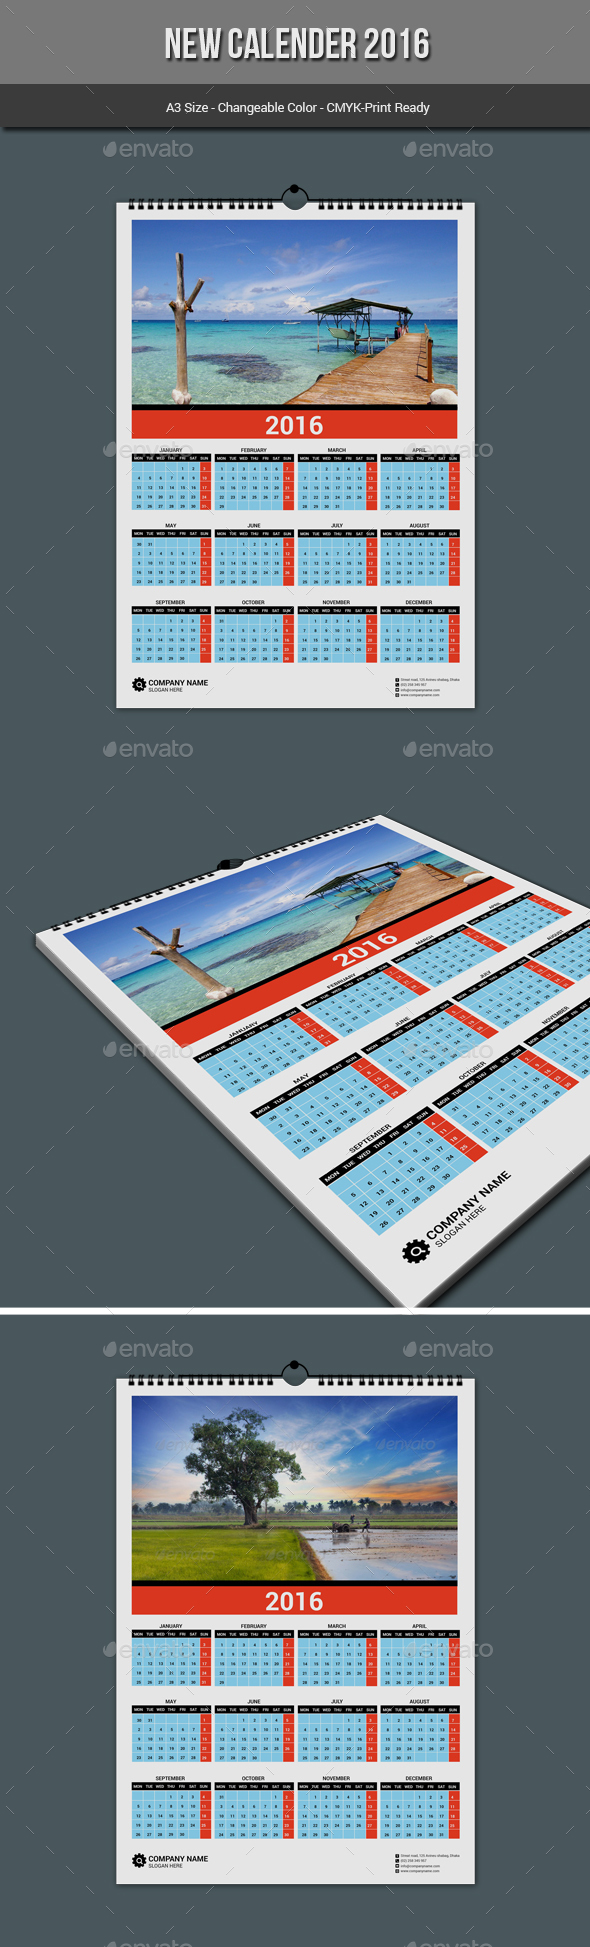 New Calender 2016 - Calendars Stationery